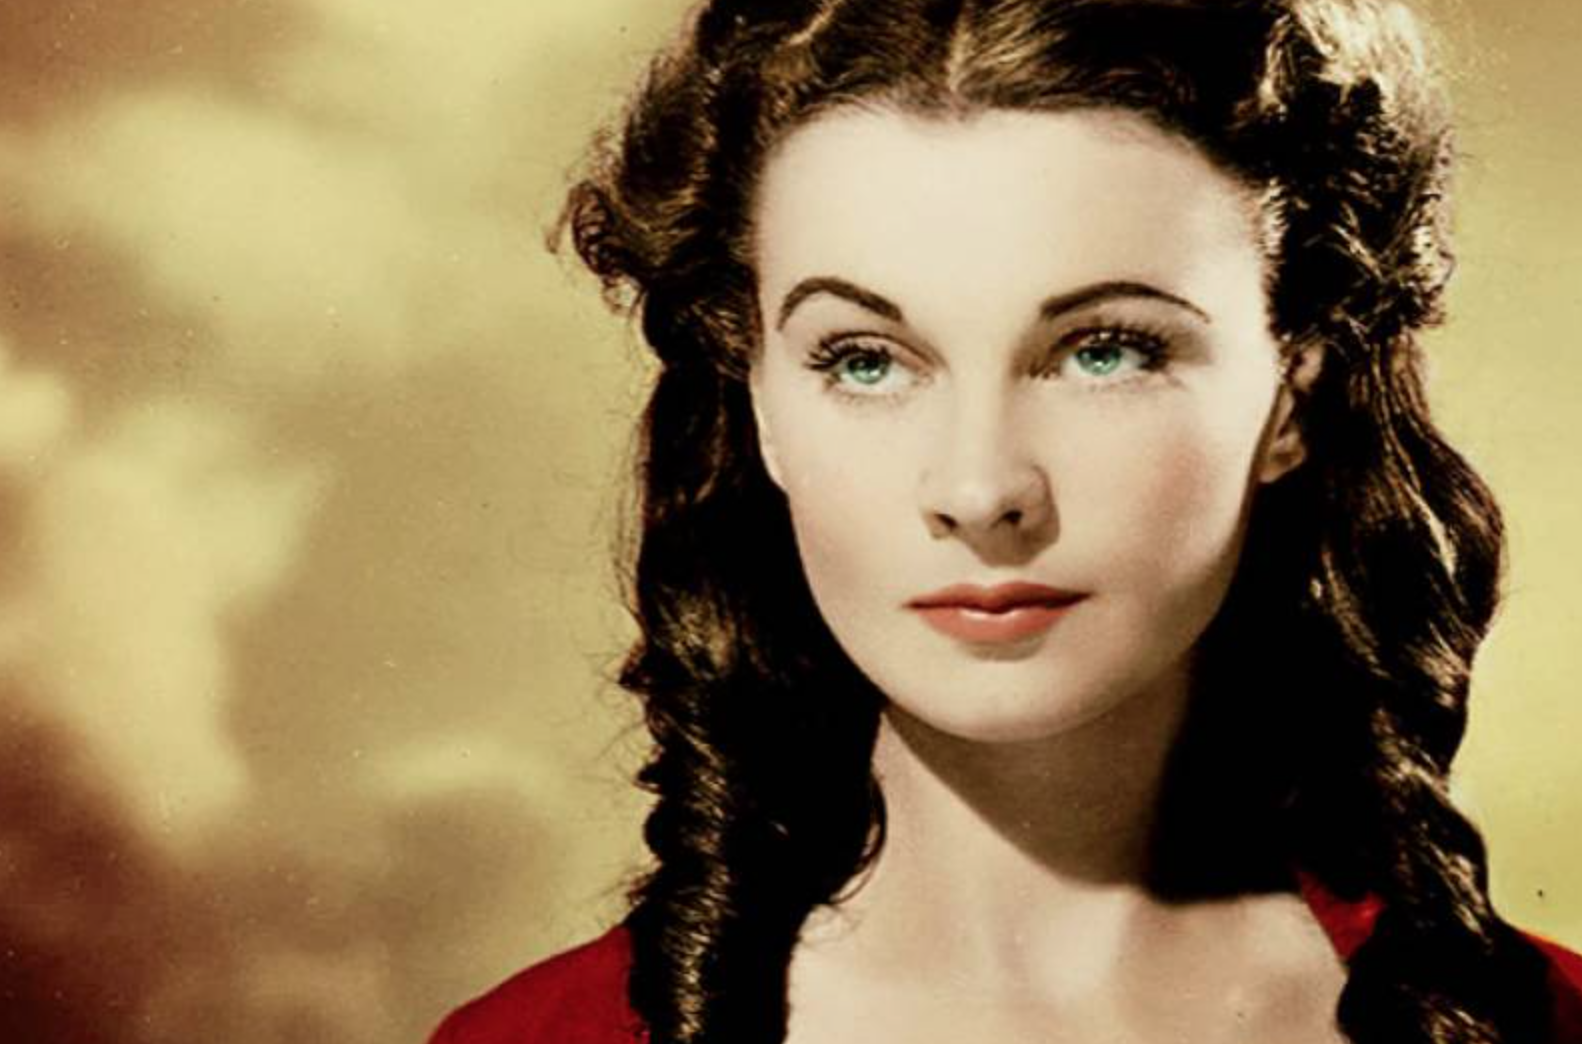 gone with the wind, southern belle, Scarlette O'Hara